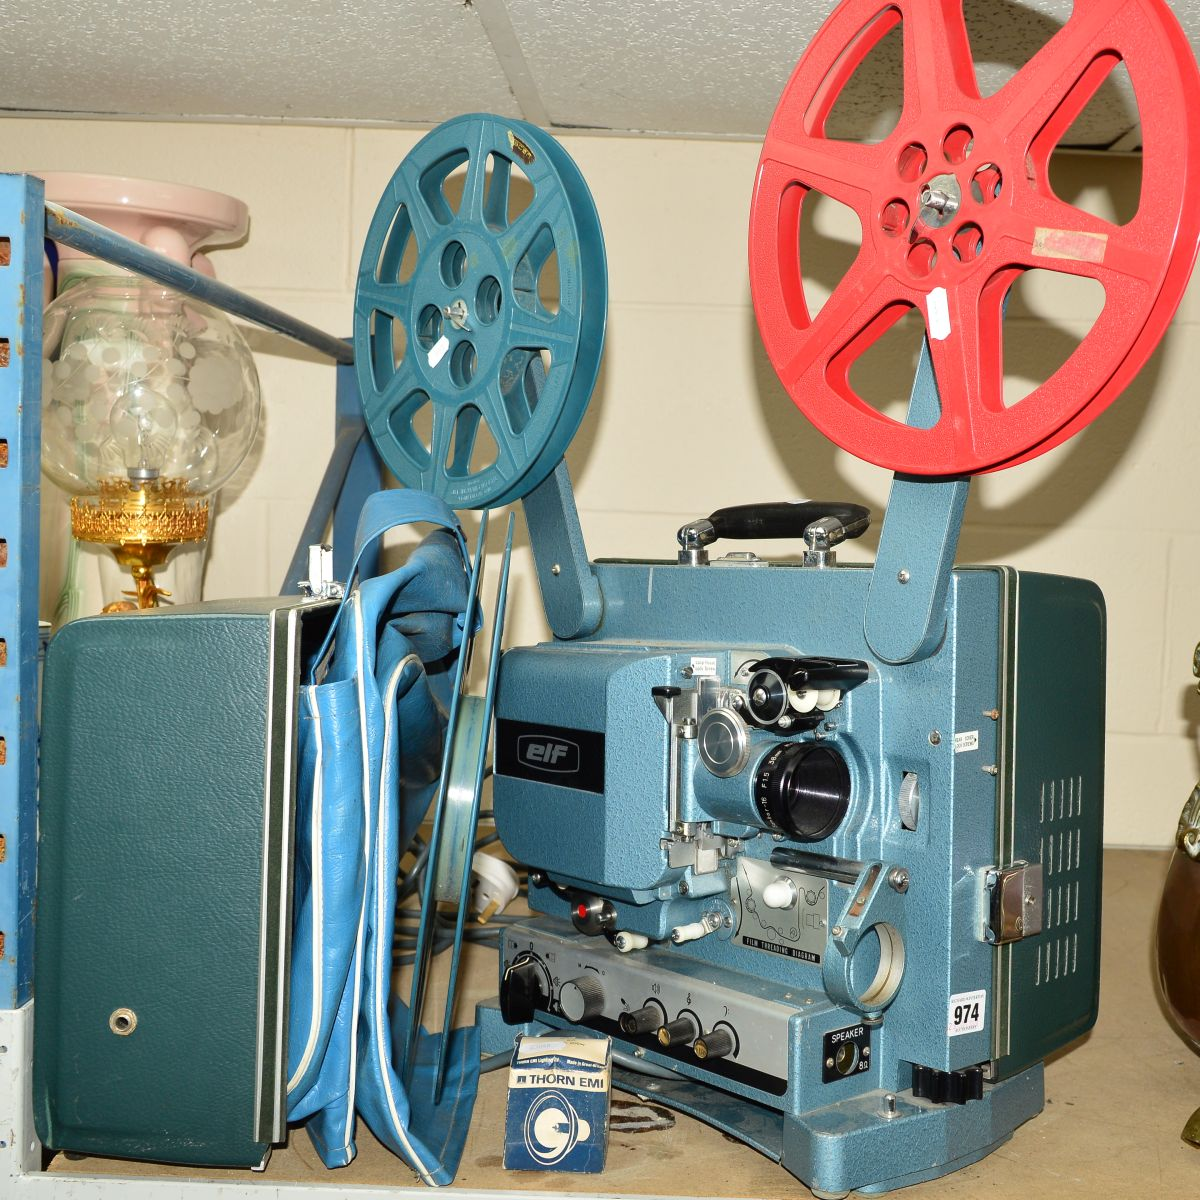 Lot 974 - A CASED ELF CINE PROJECTOR, with spare reels